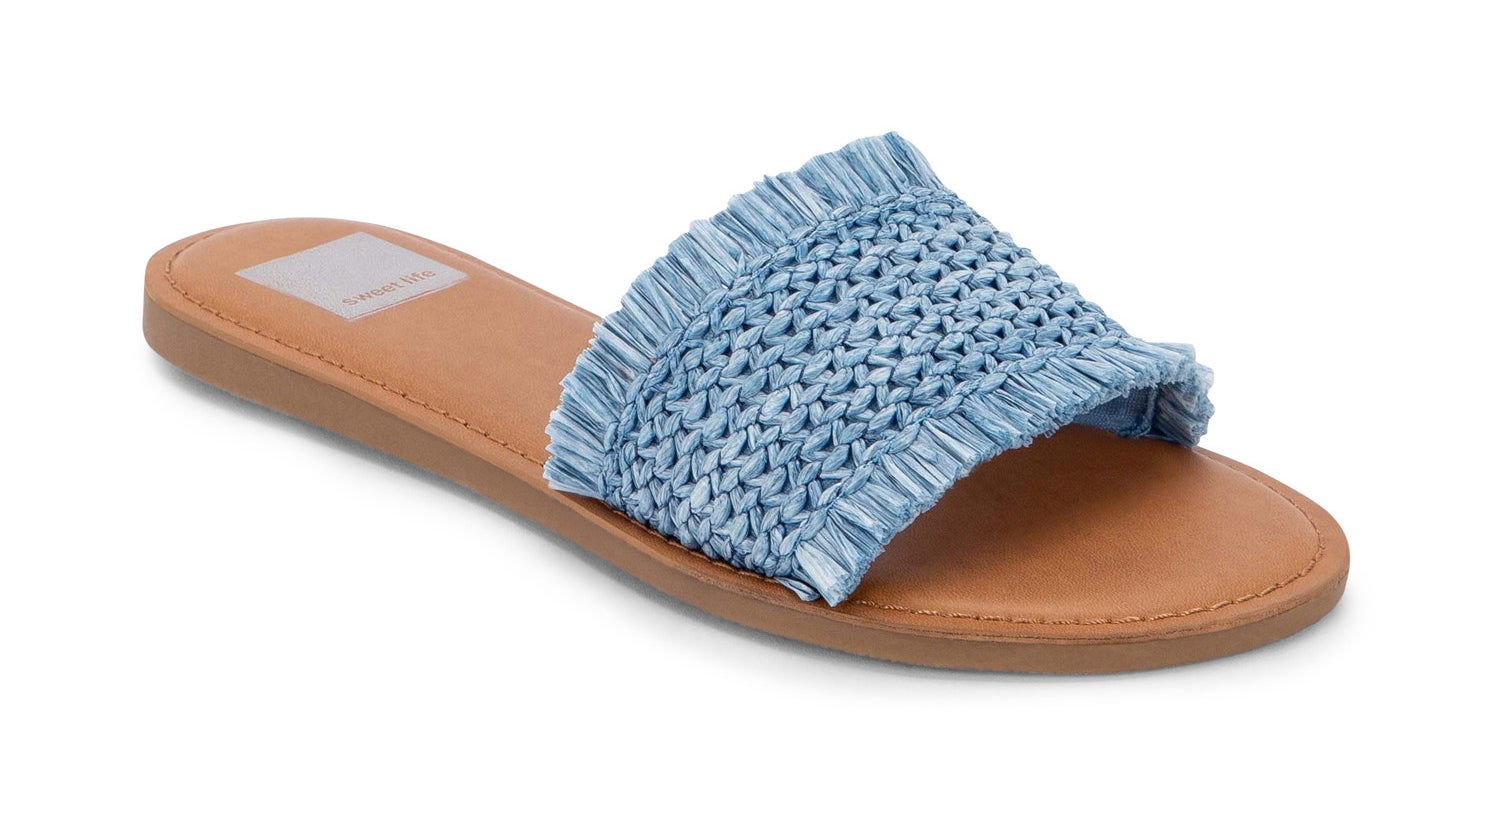 A woven light-blue slide sandal with a light brown insole